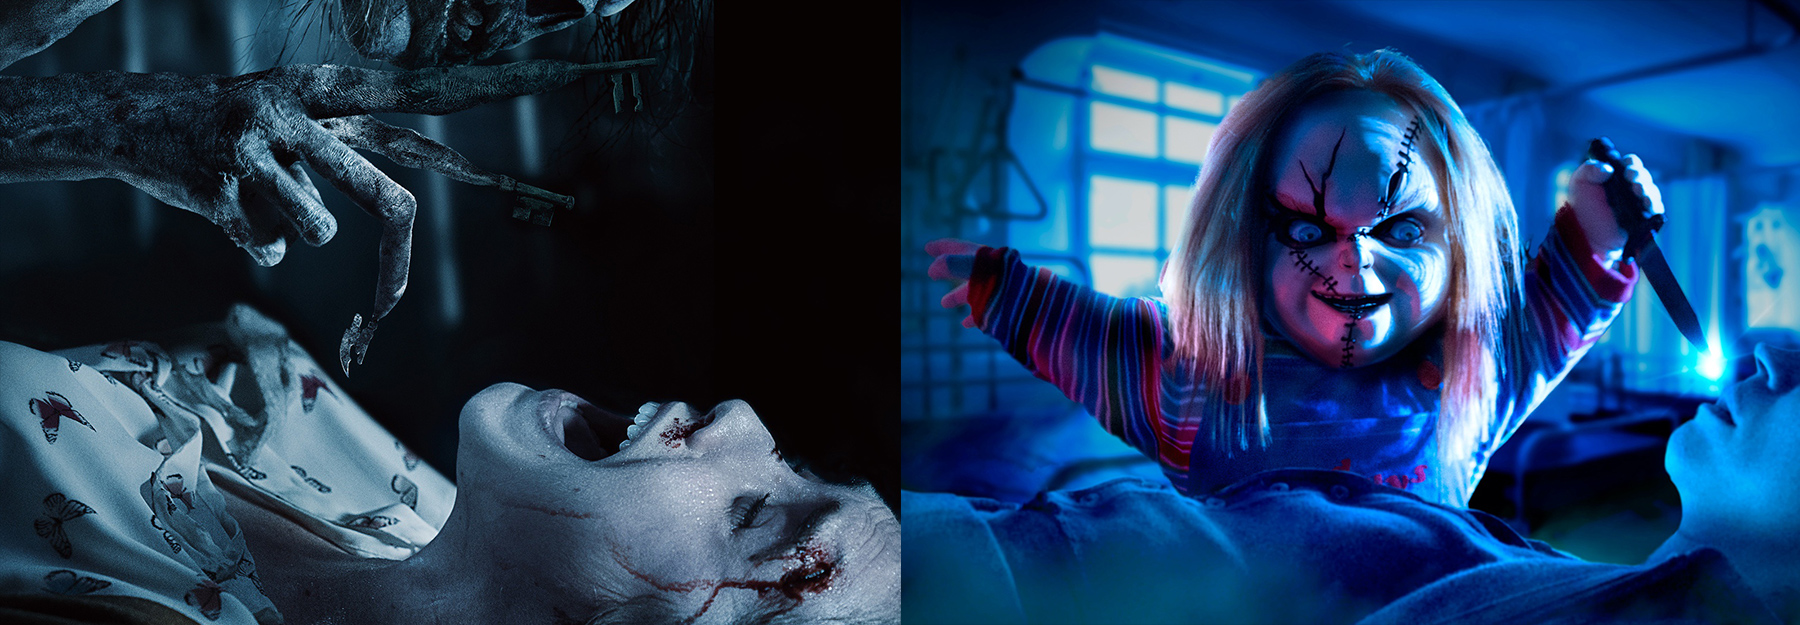 Universal Studios Japan Halloween 2018 Lineup Revealed – Halloween Horror Nights - Insidious: The Last Key and Cult of Chucky Horror Maze